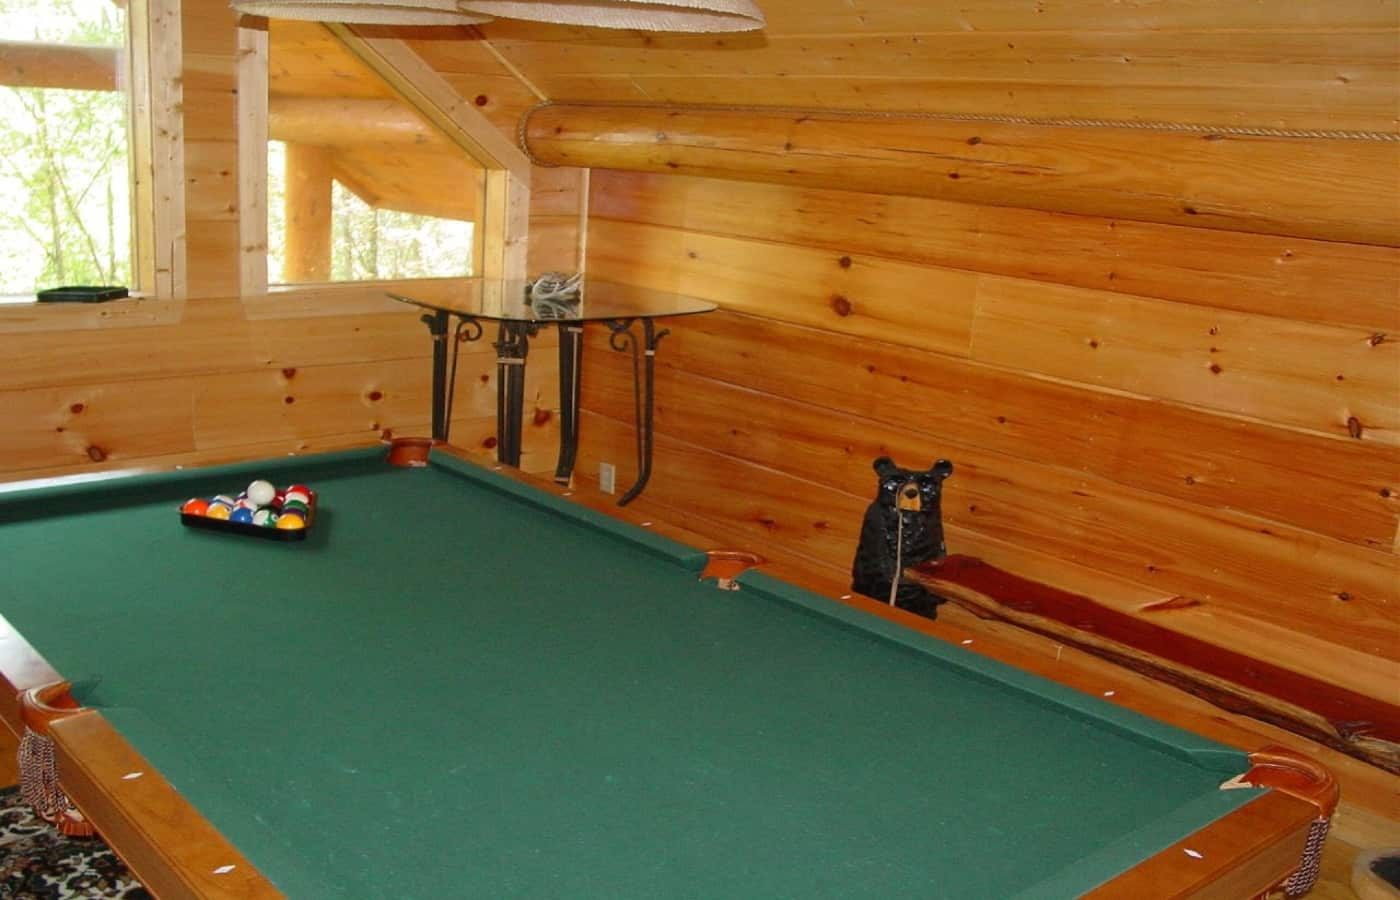 can a pool table go upstairs